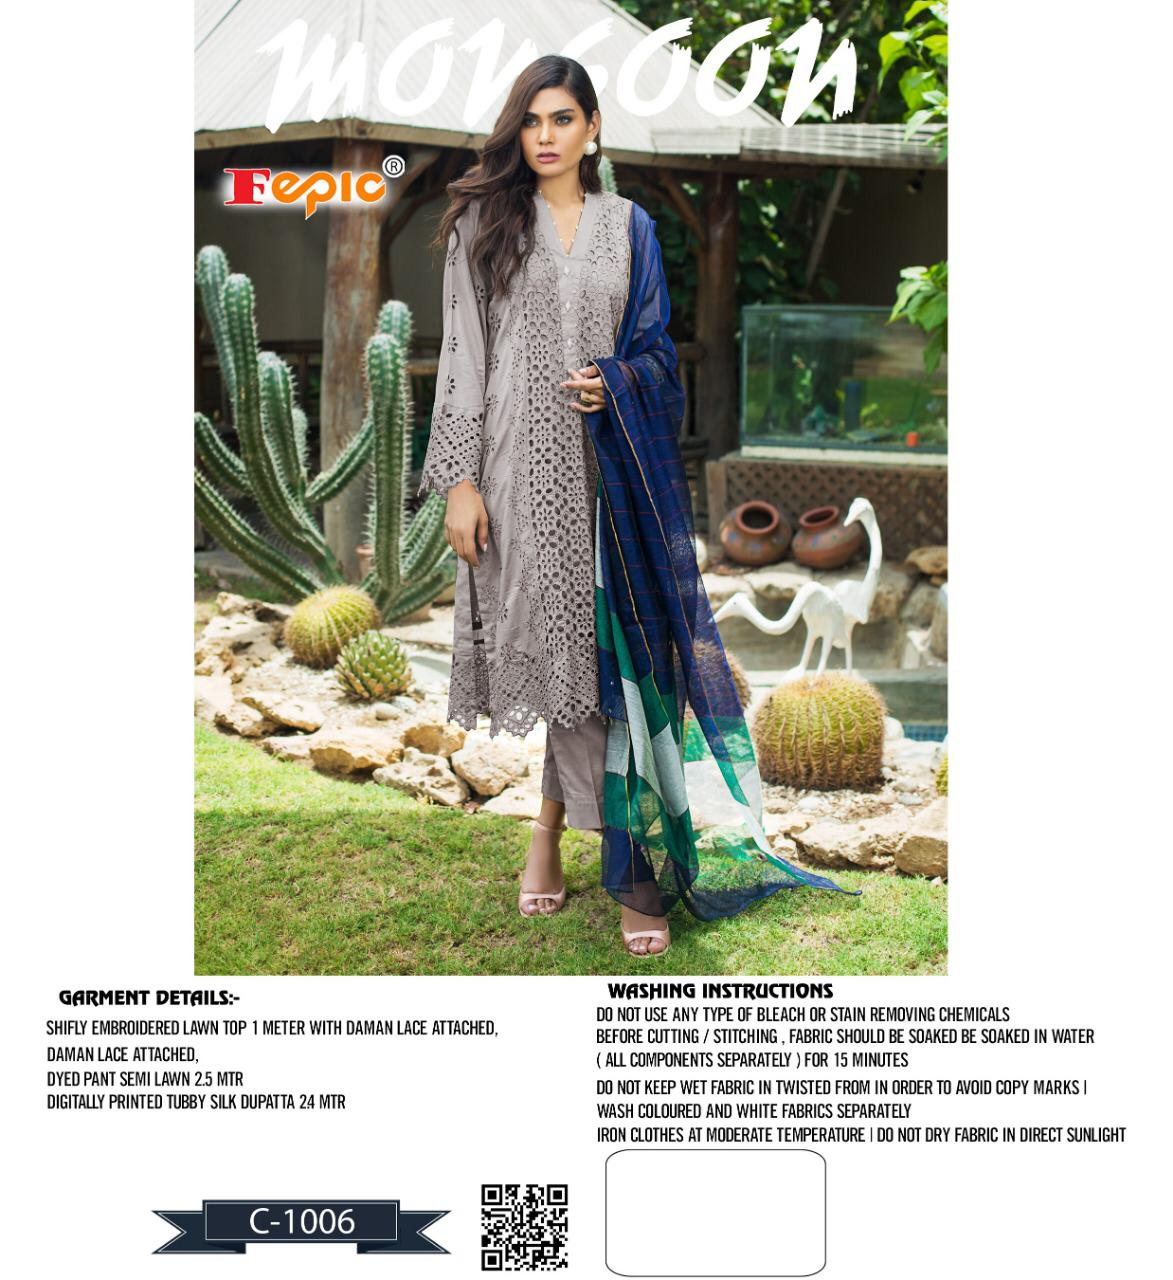 Fepic Rosemeen Monsoon Designer Cotton Embroidered Suits Wholesale